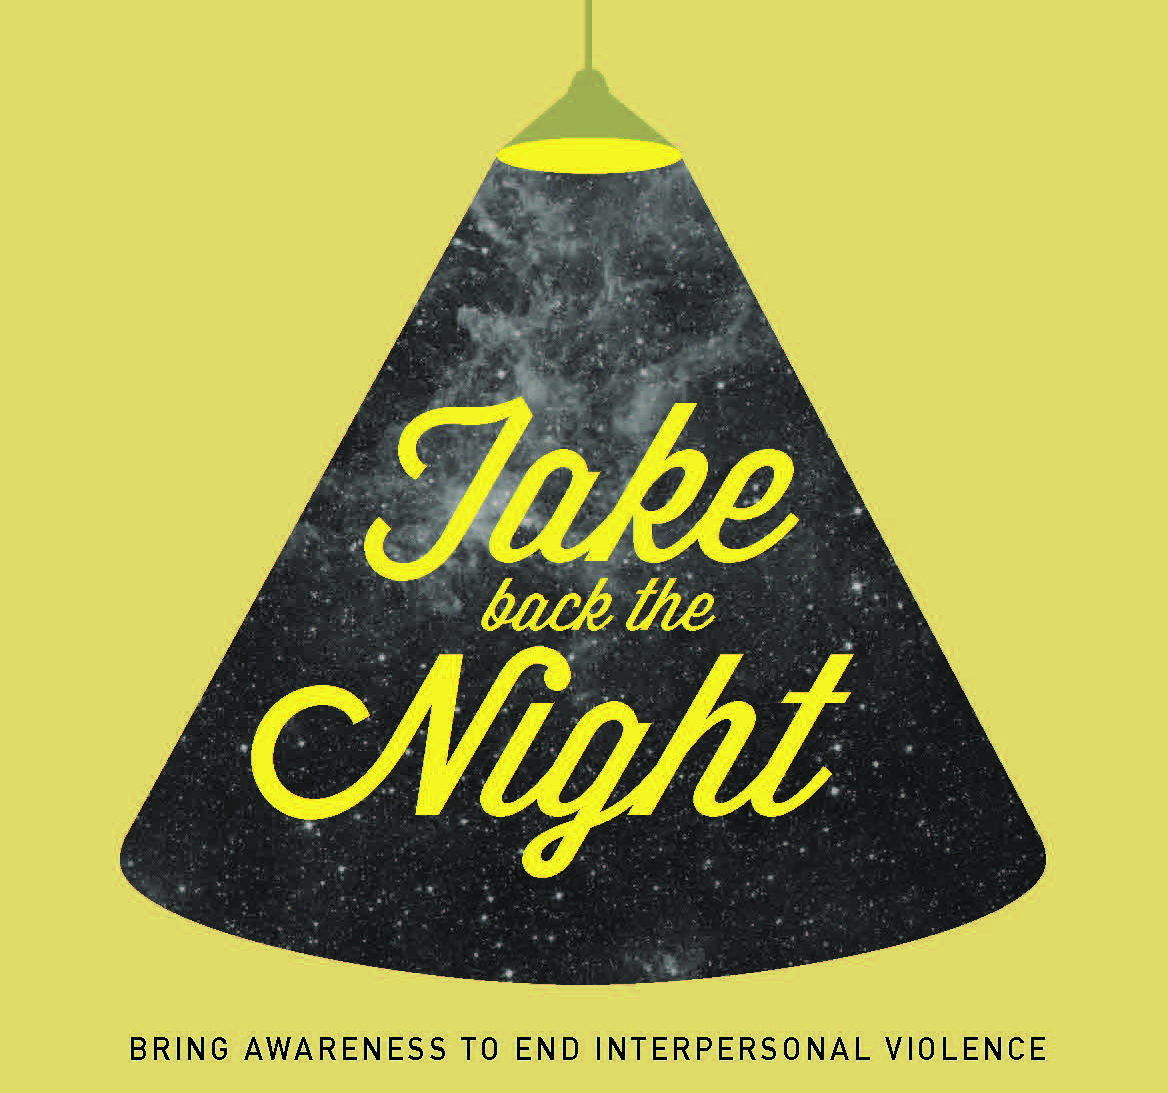 Take back the Night bring awareness to end interpersonal violence